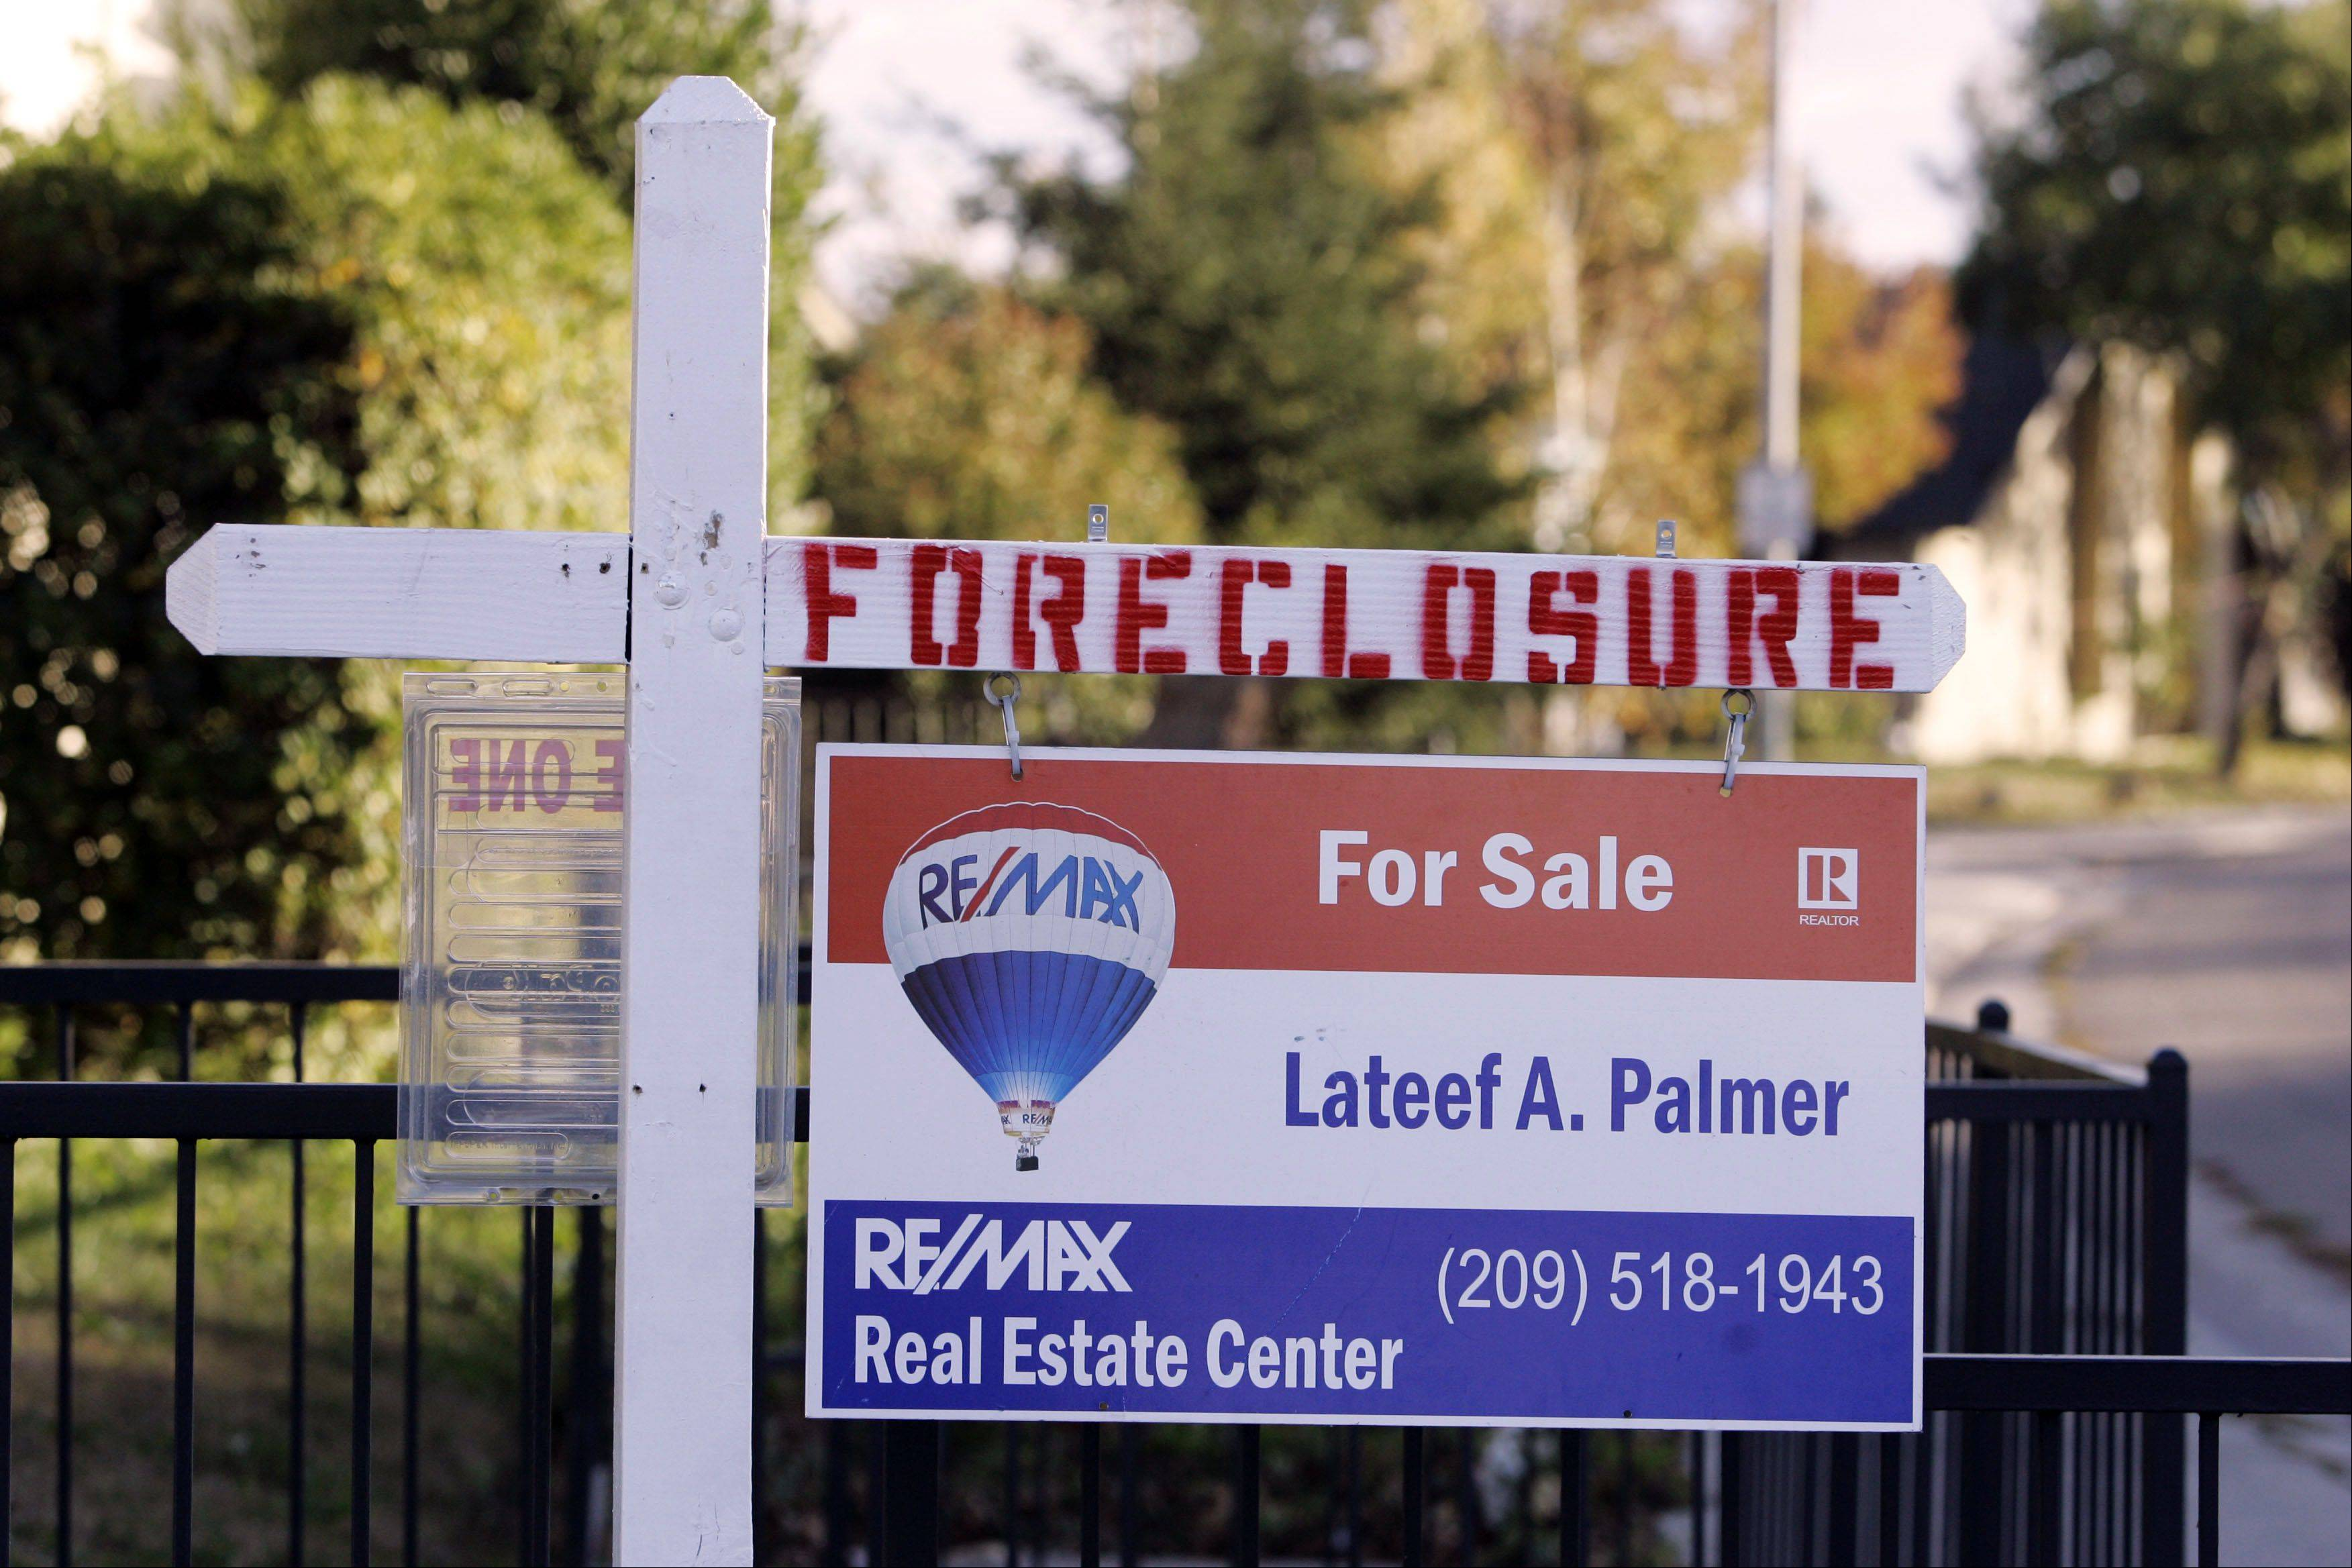 Illinois home foreclosure activity fell 6 percent in August compared to July, and has fallen almost 60 percent in the last year.